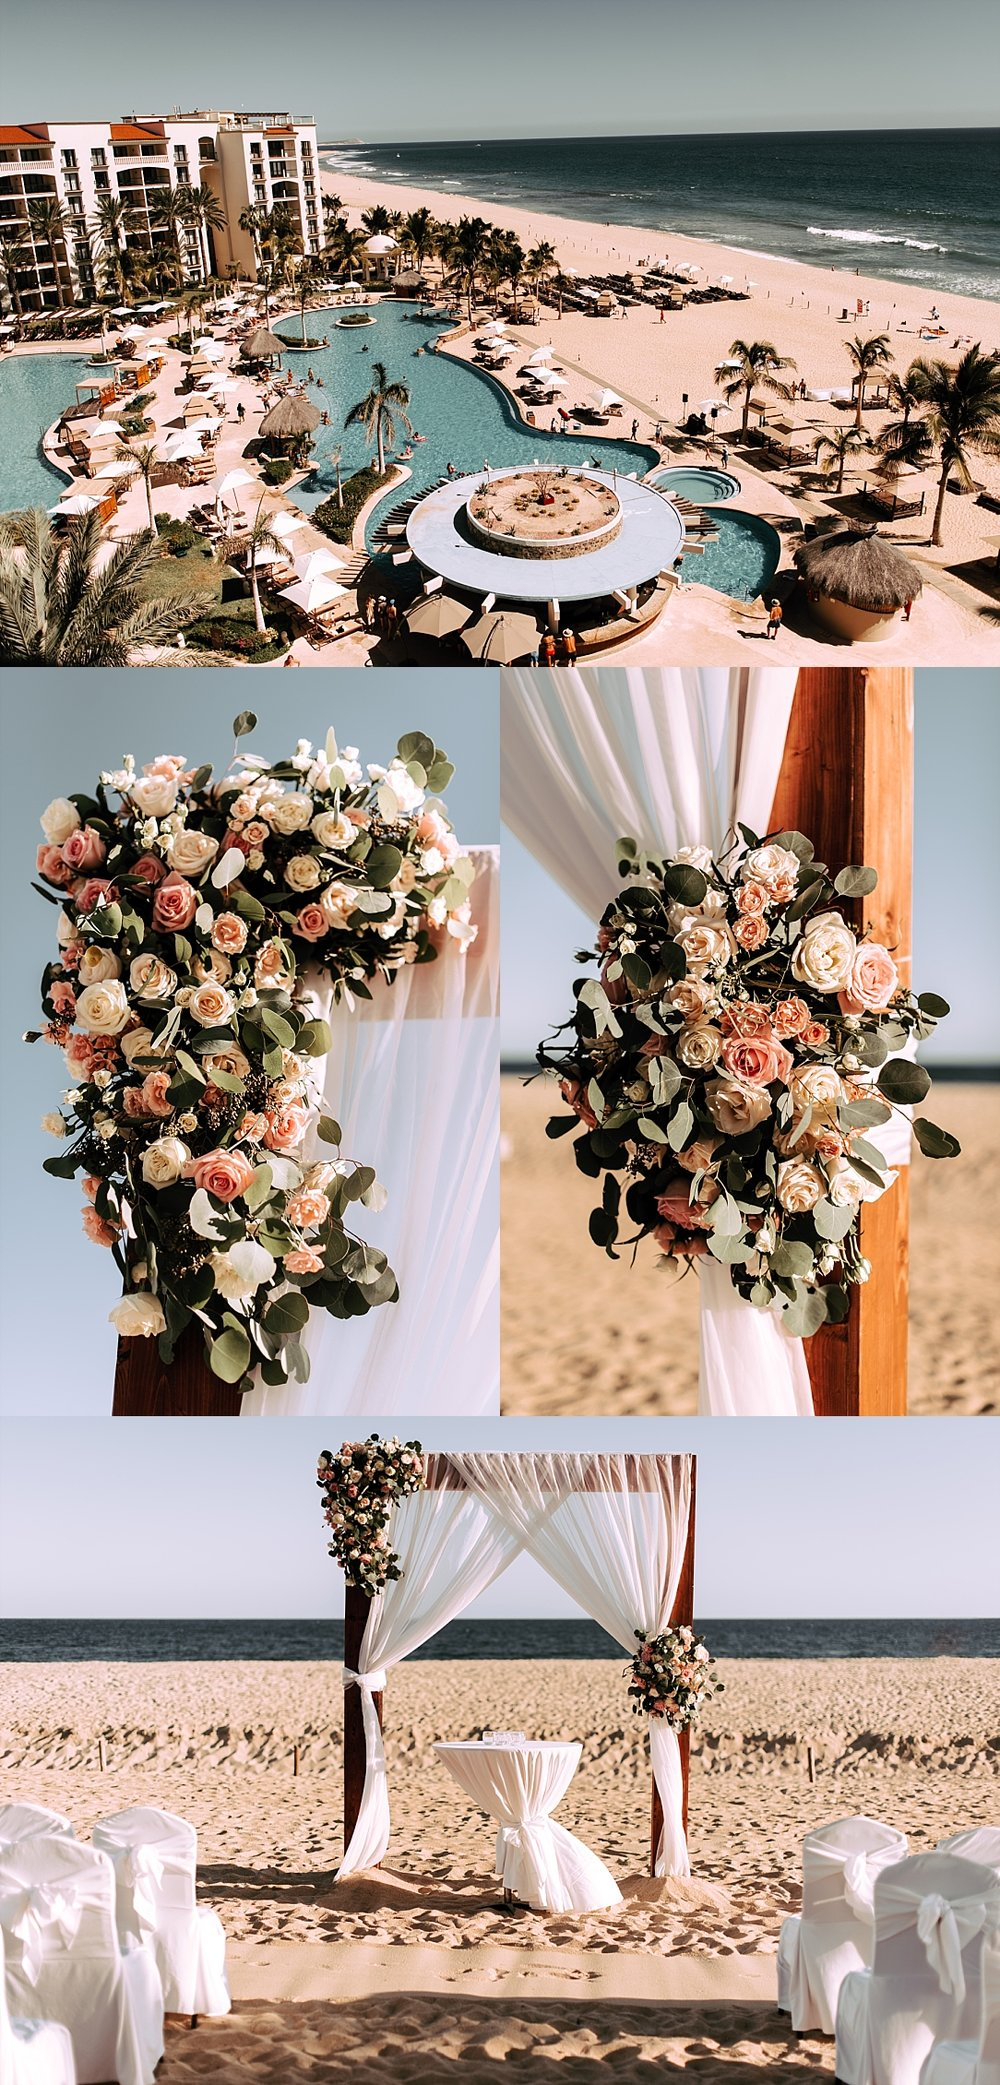 dreamy cabo beach wedding_0006.jpg